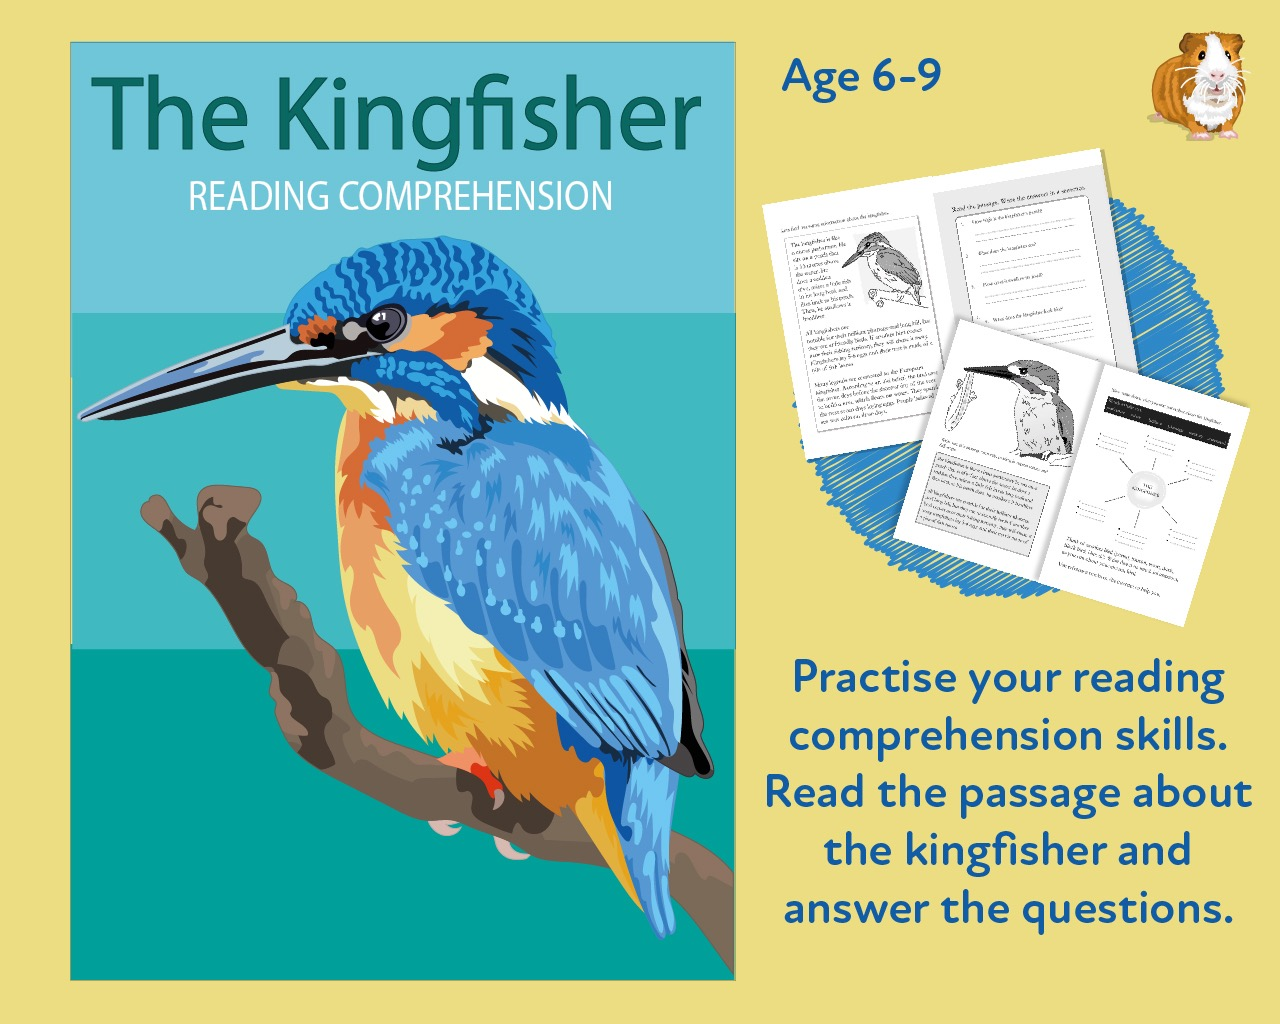 Let's Practise Our Reading Comprehension: The Kingfisher (6-9 years)